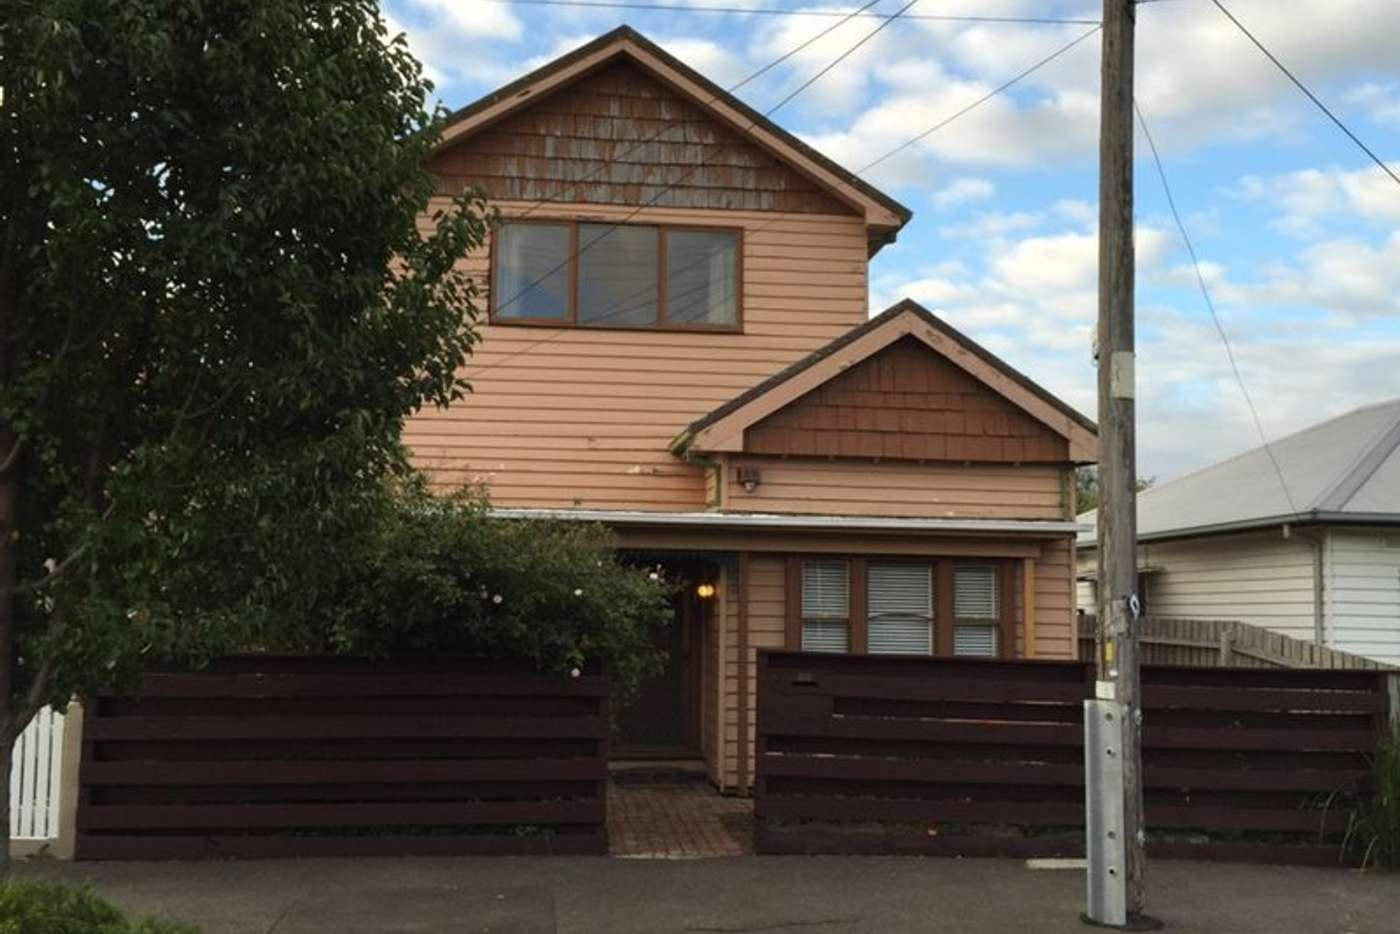 Main view of Homely house listing, 12 Union Street, Williamstown VIC 3016